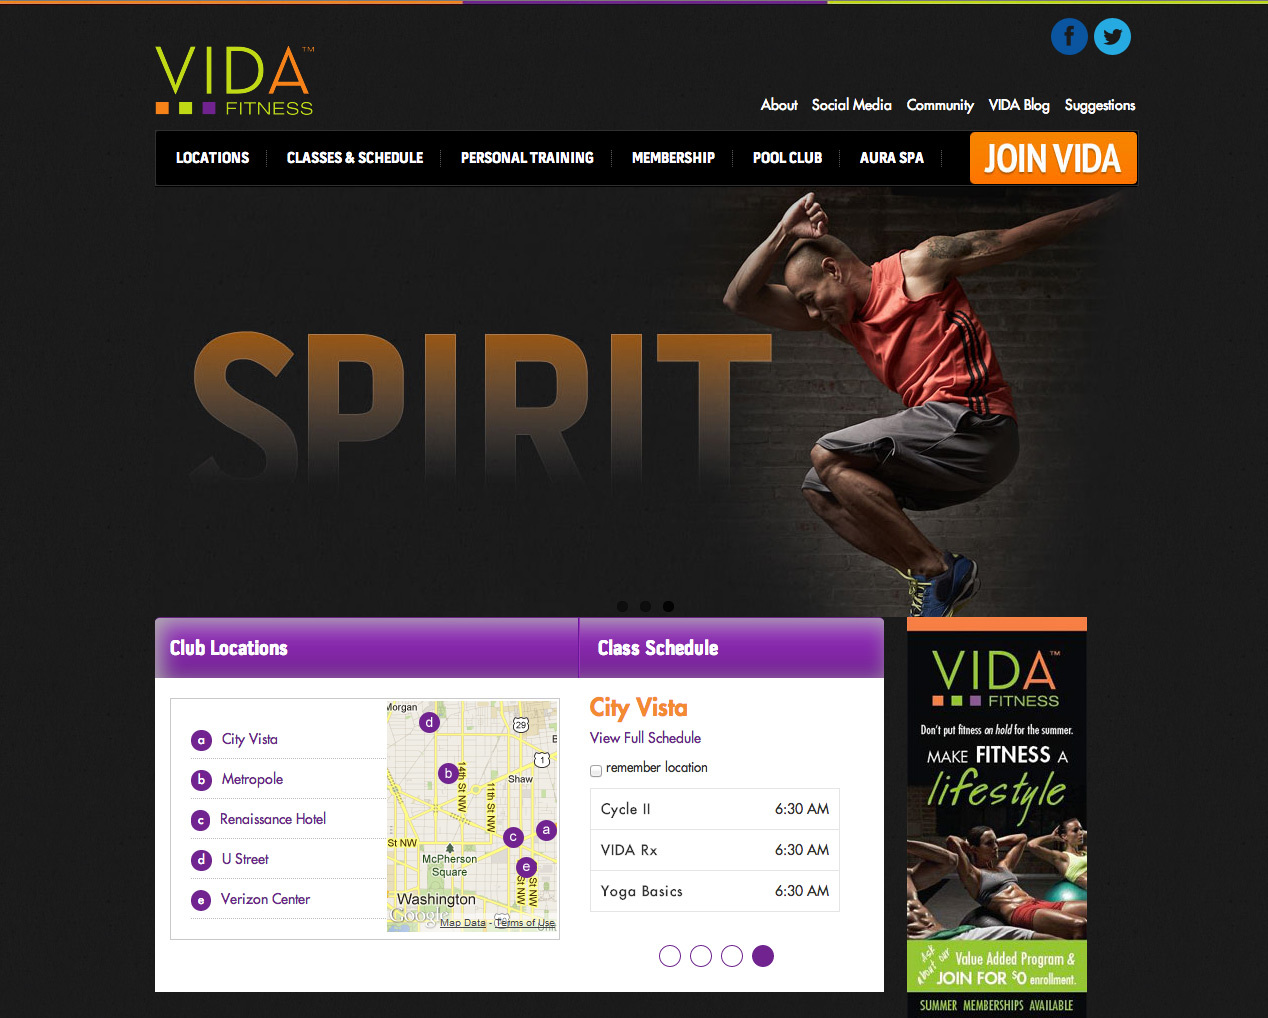 ADVERTISE-Workouts2-VIDA-Fitness